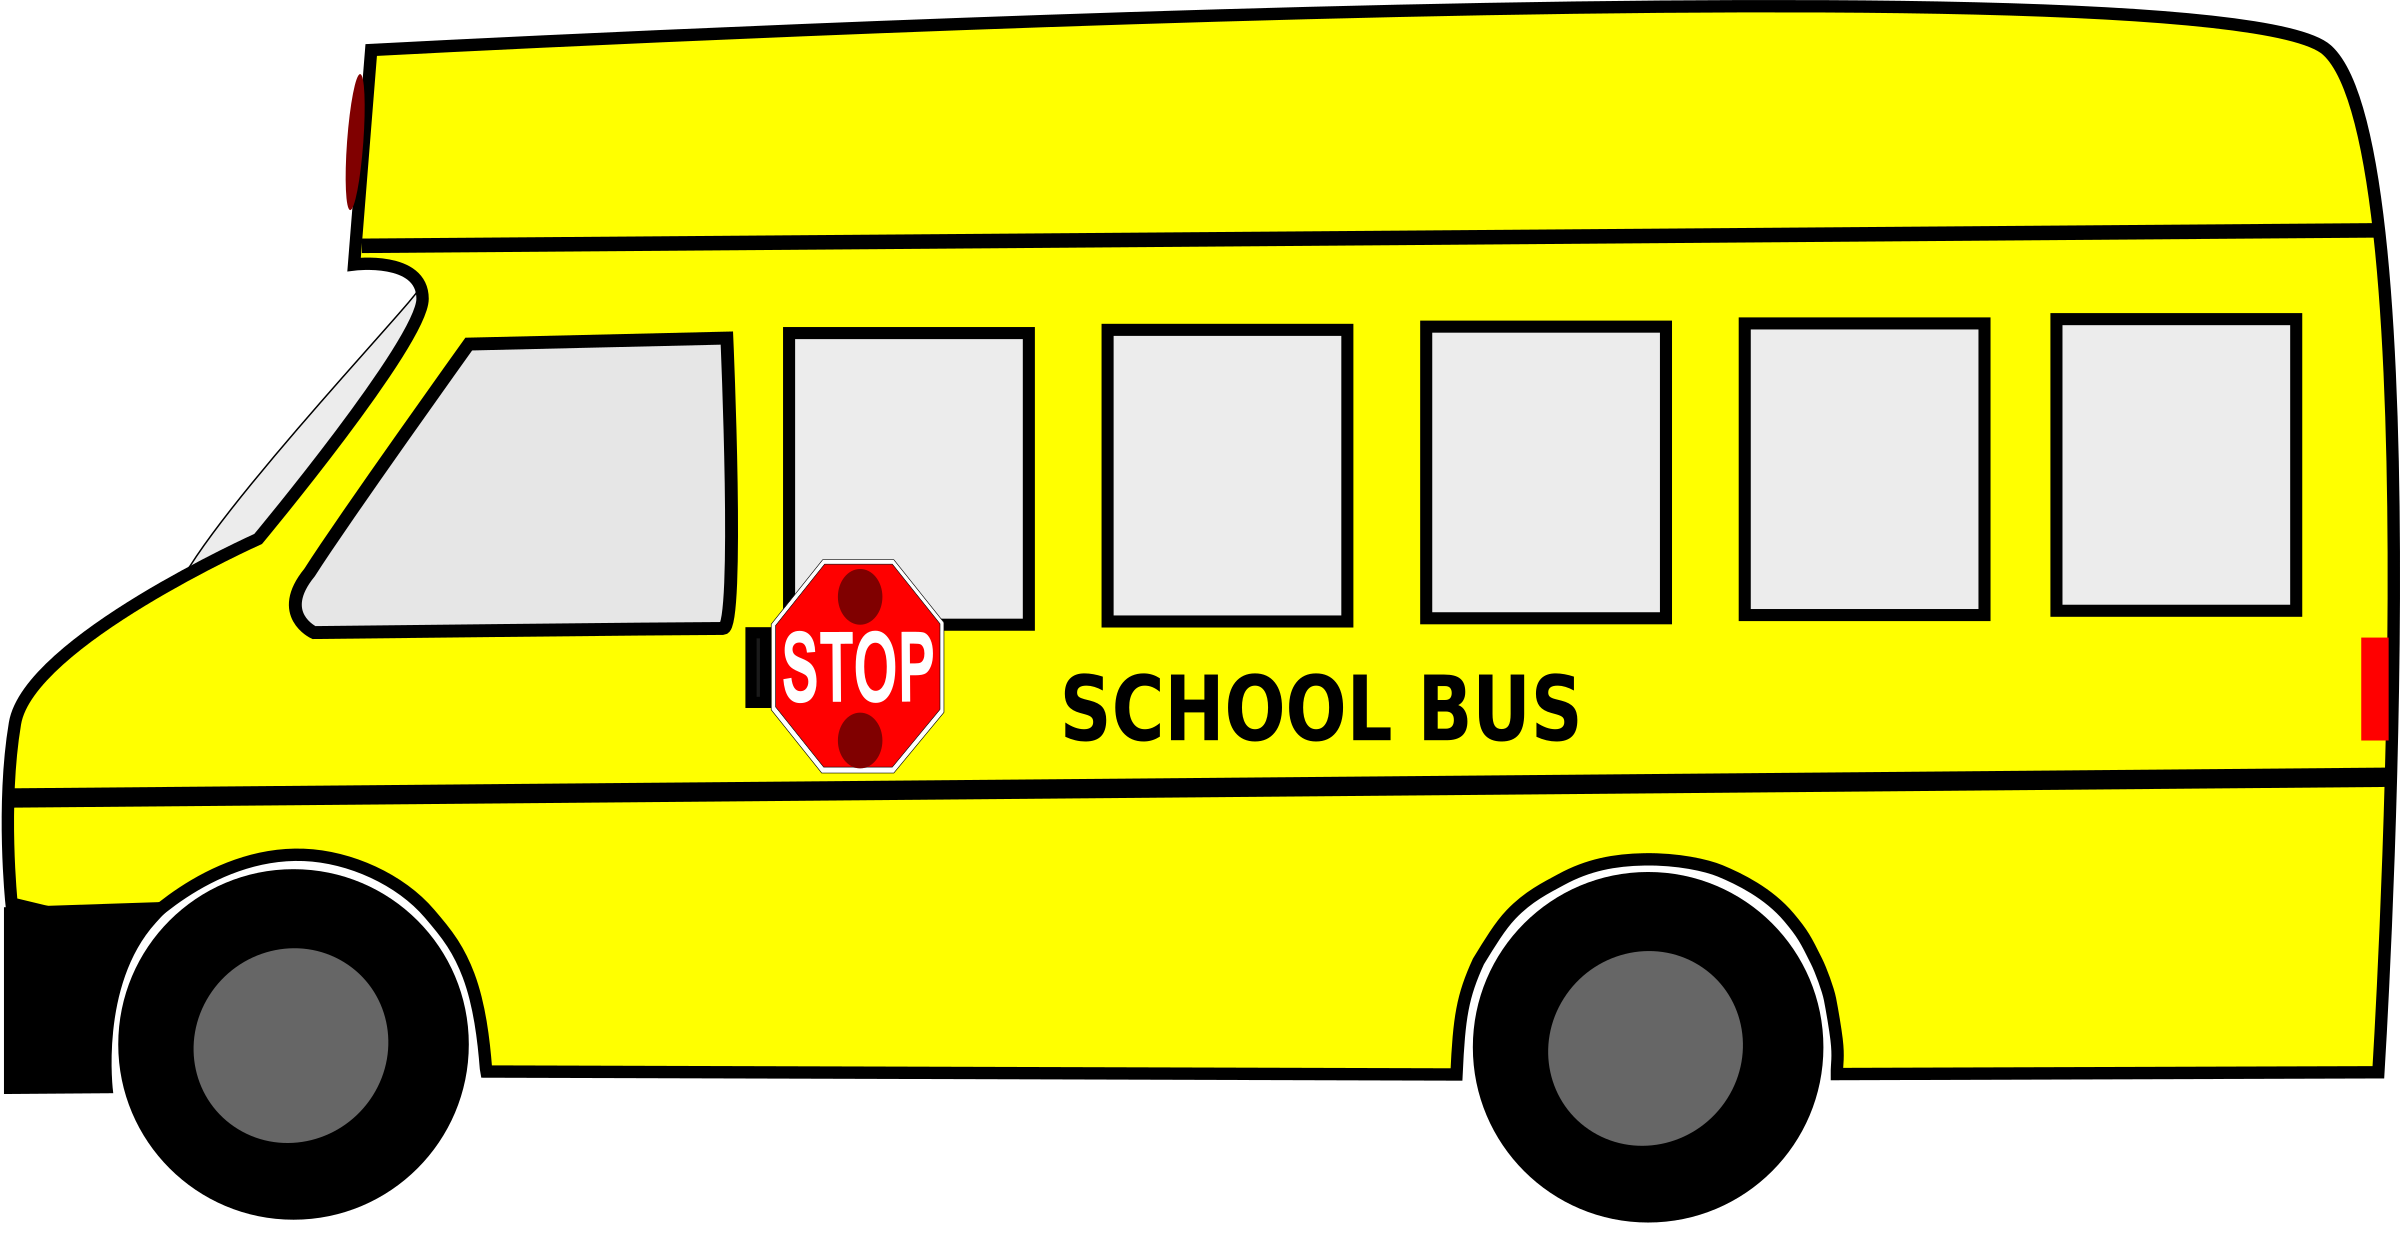 Moving clipart school bus School Free Clipart Clipart SVG